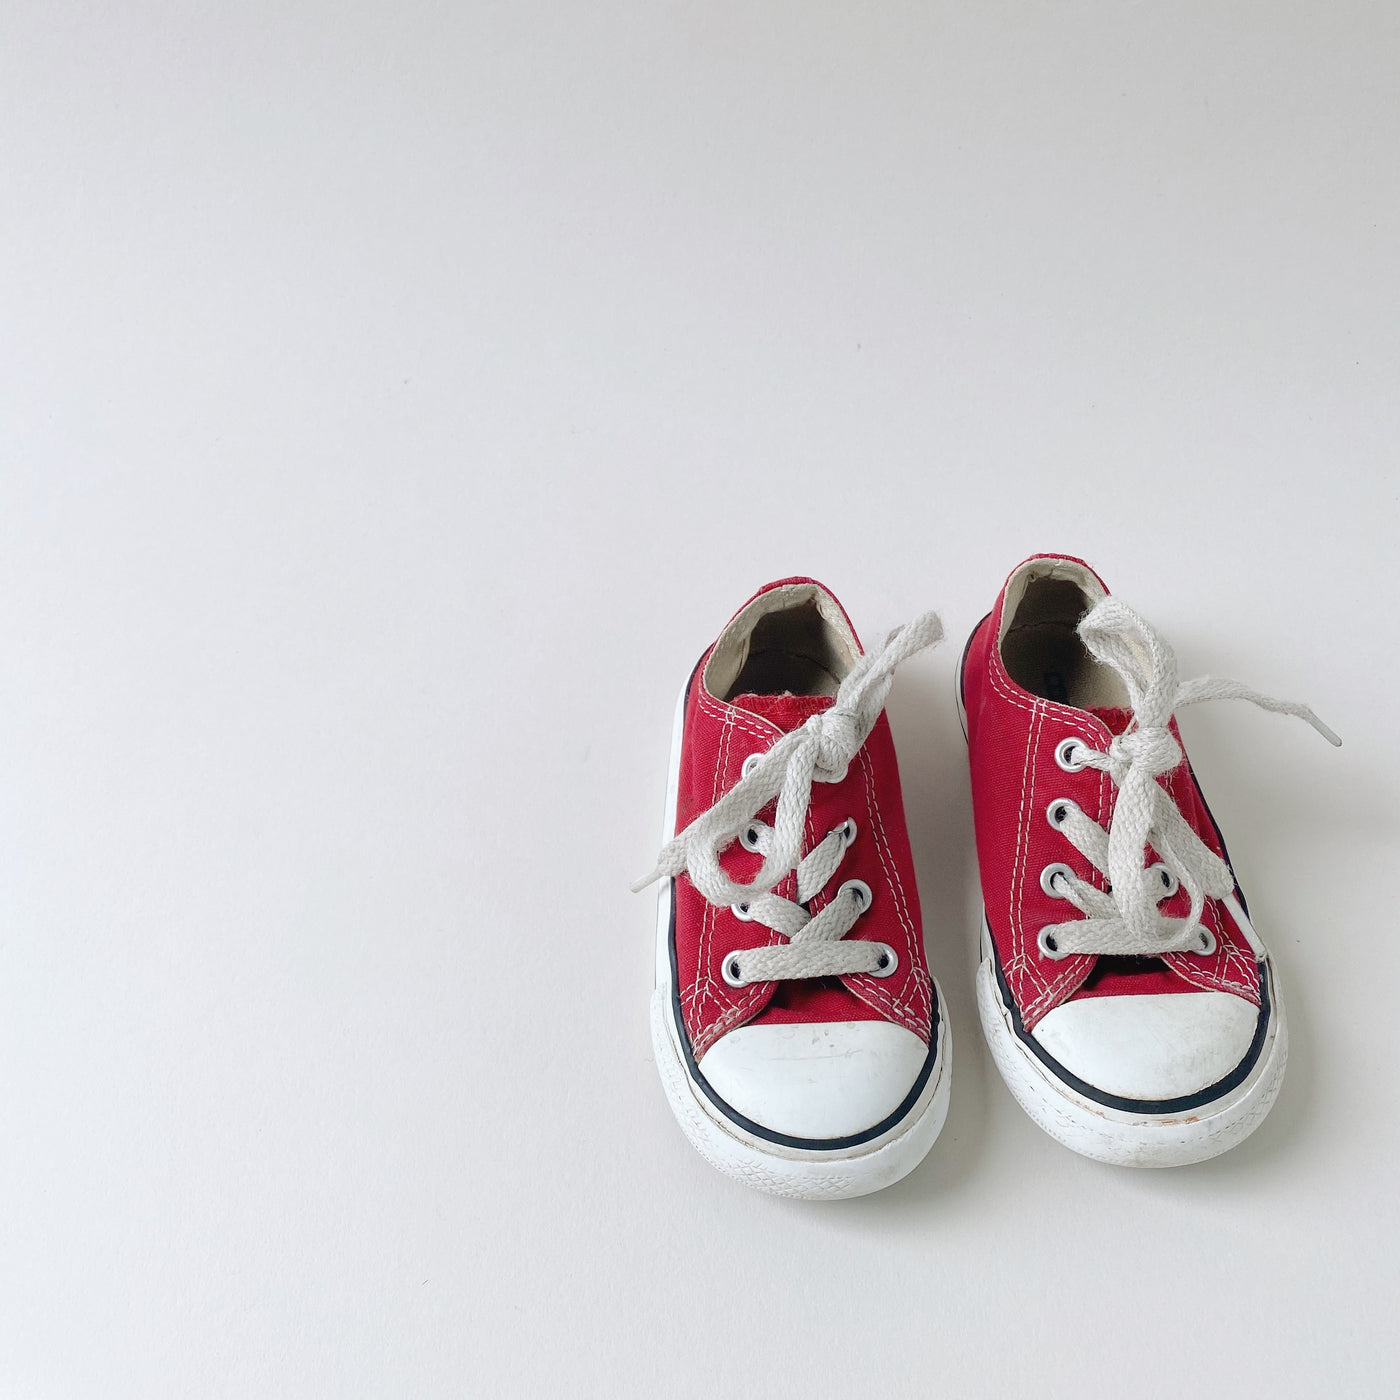 Red Low Top Chuck Taylor Converse All Stars / Toddler 6